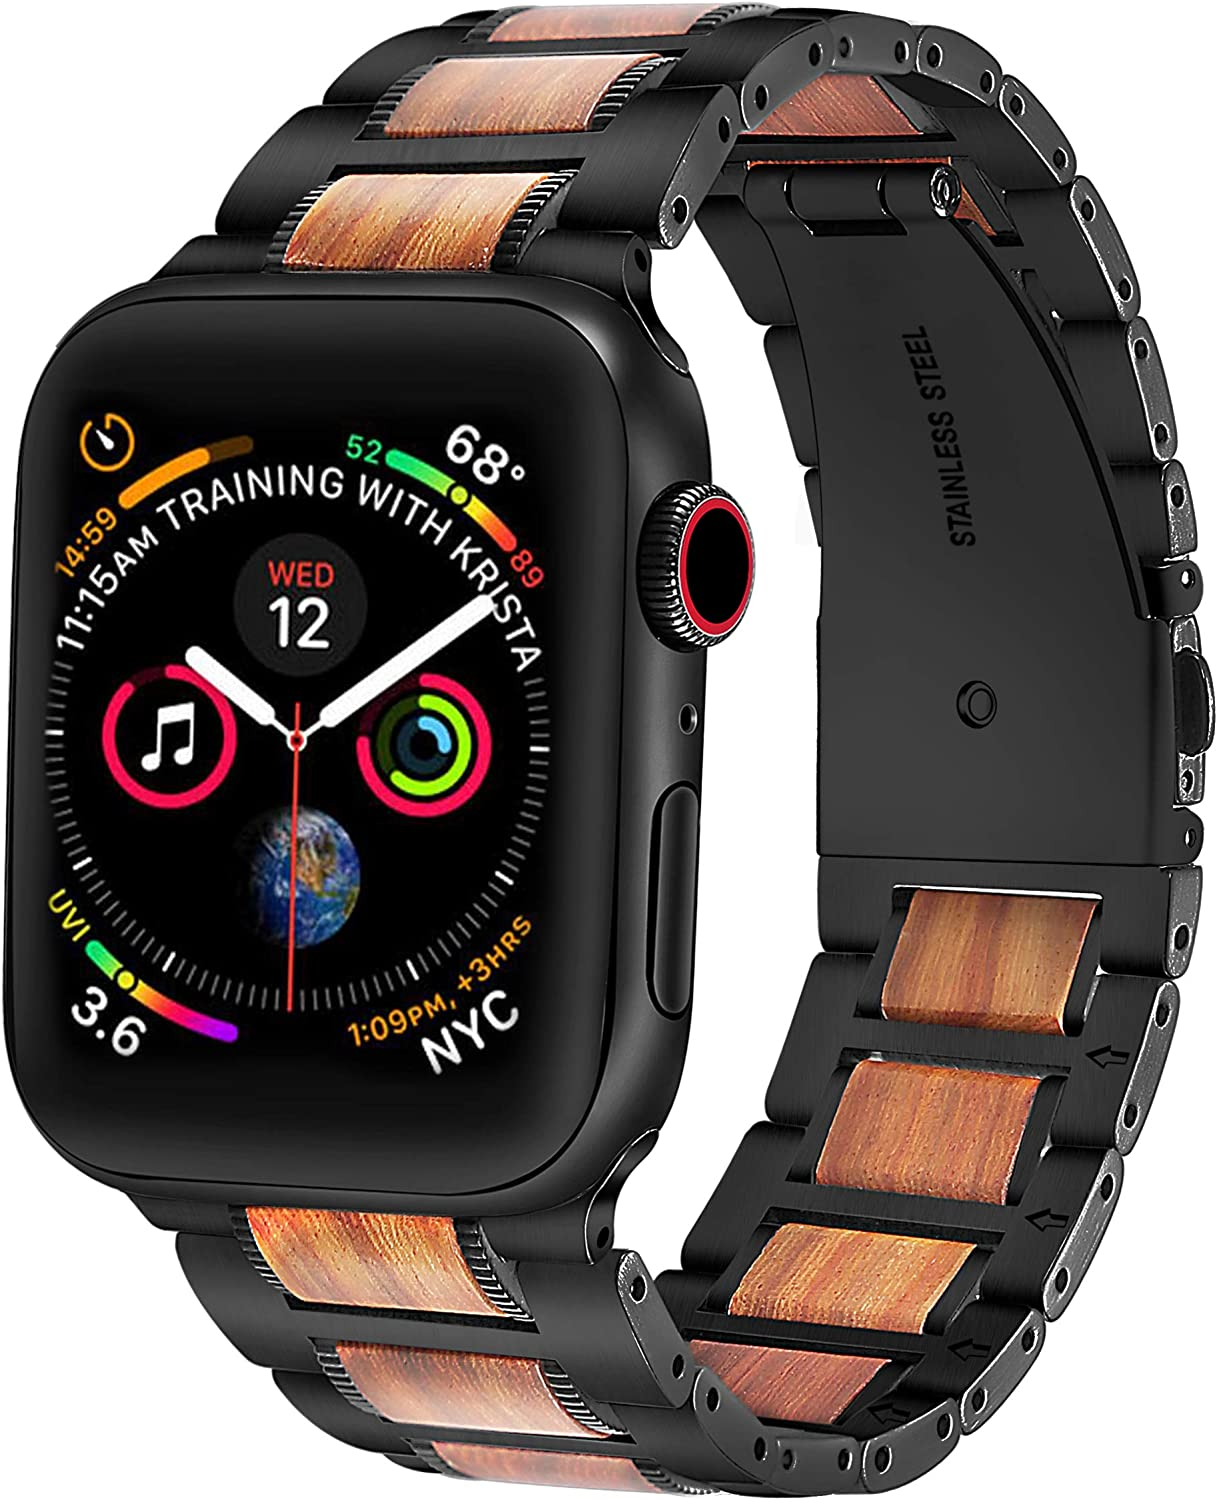 Compatible with Apple Watch Band 42mm 44mm,DMMG Wood Metal Natural Genuine Purple Sandalwood with Stainless Steel Metal Clasp Replacement iwatch Band Compatible Apple Watch Series6 5 4 3 2 1 SE(Black)